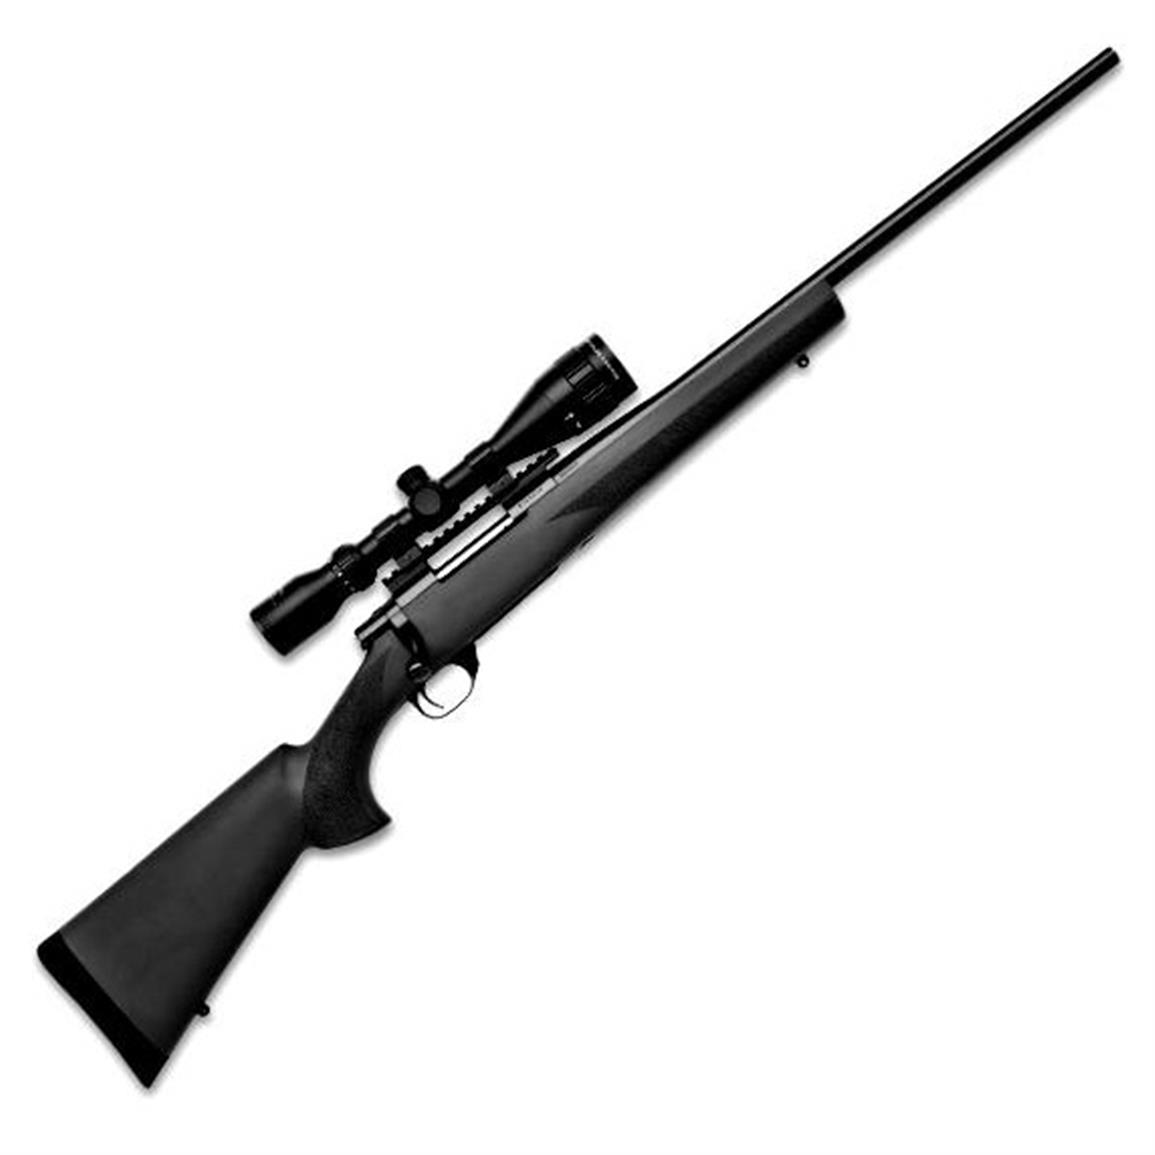 "LSI Howa Hogue Gameking Package, Bolt Action, .204 Ruger, 22"" Barrel, 3.5-10x44 Scope, 5+1 Rounds"